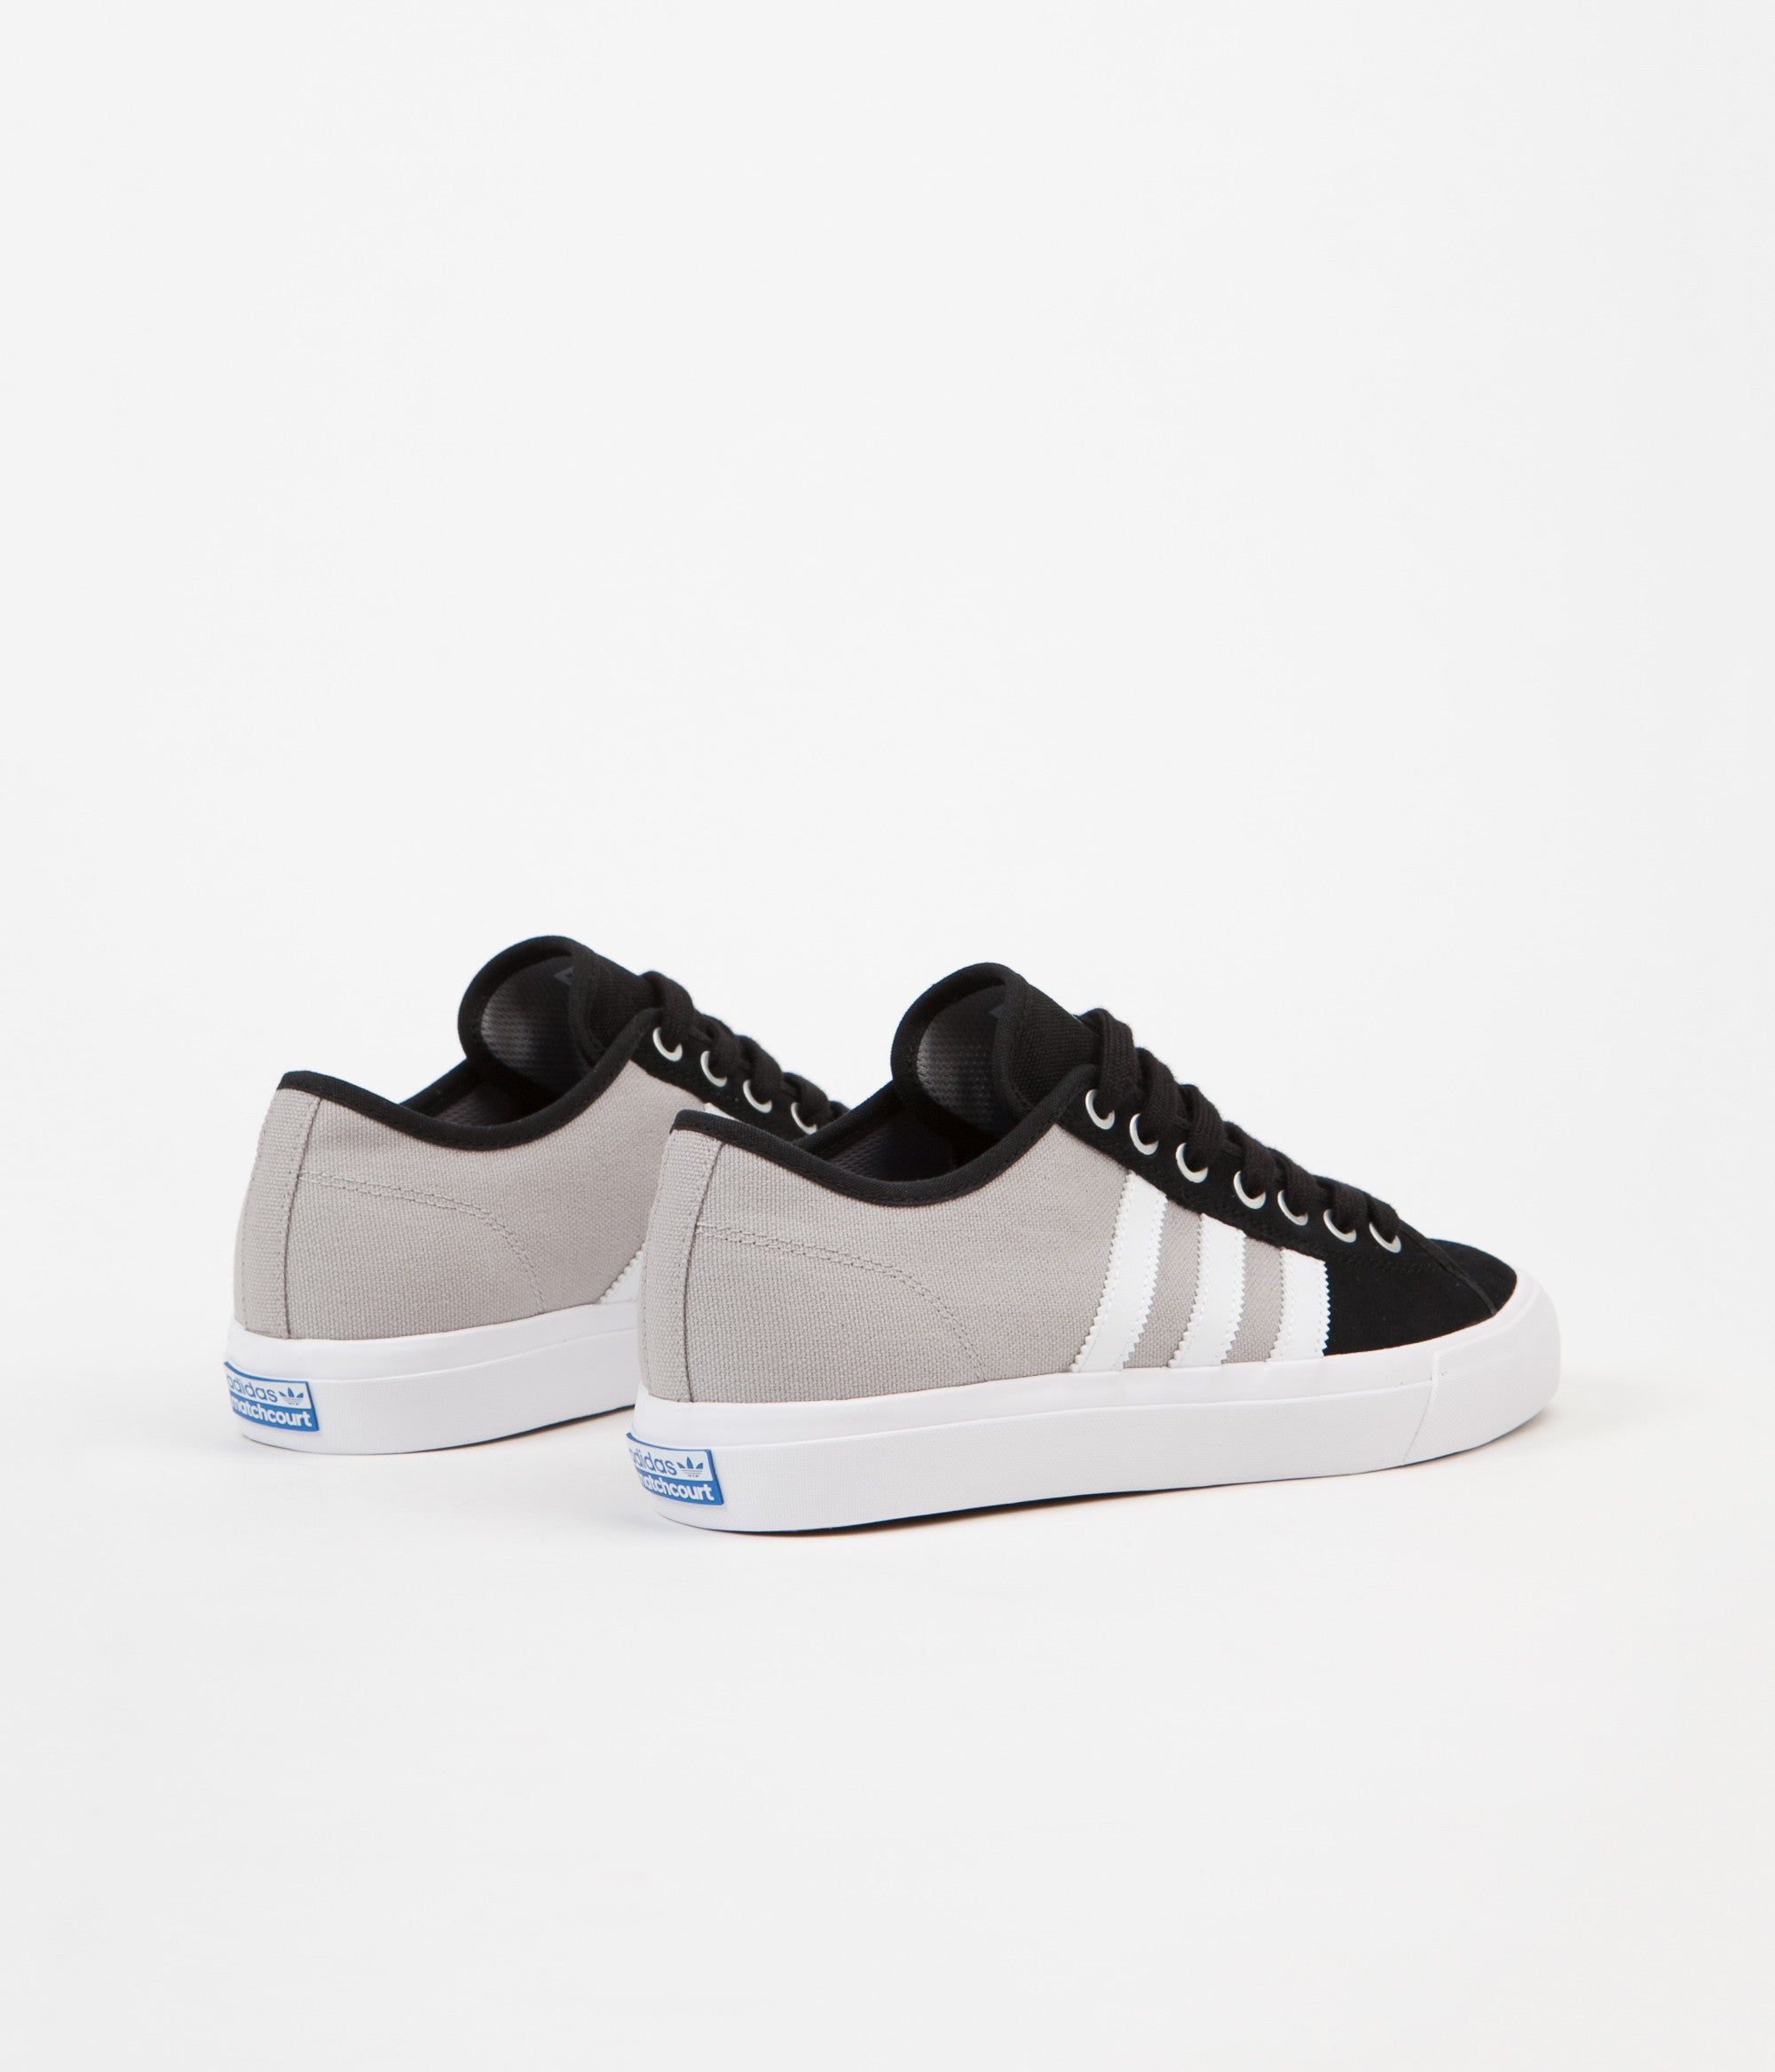 Adidas Matchcourt RX Shoes - Core Black   White   Customized  80d2b5119